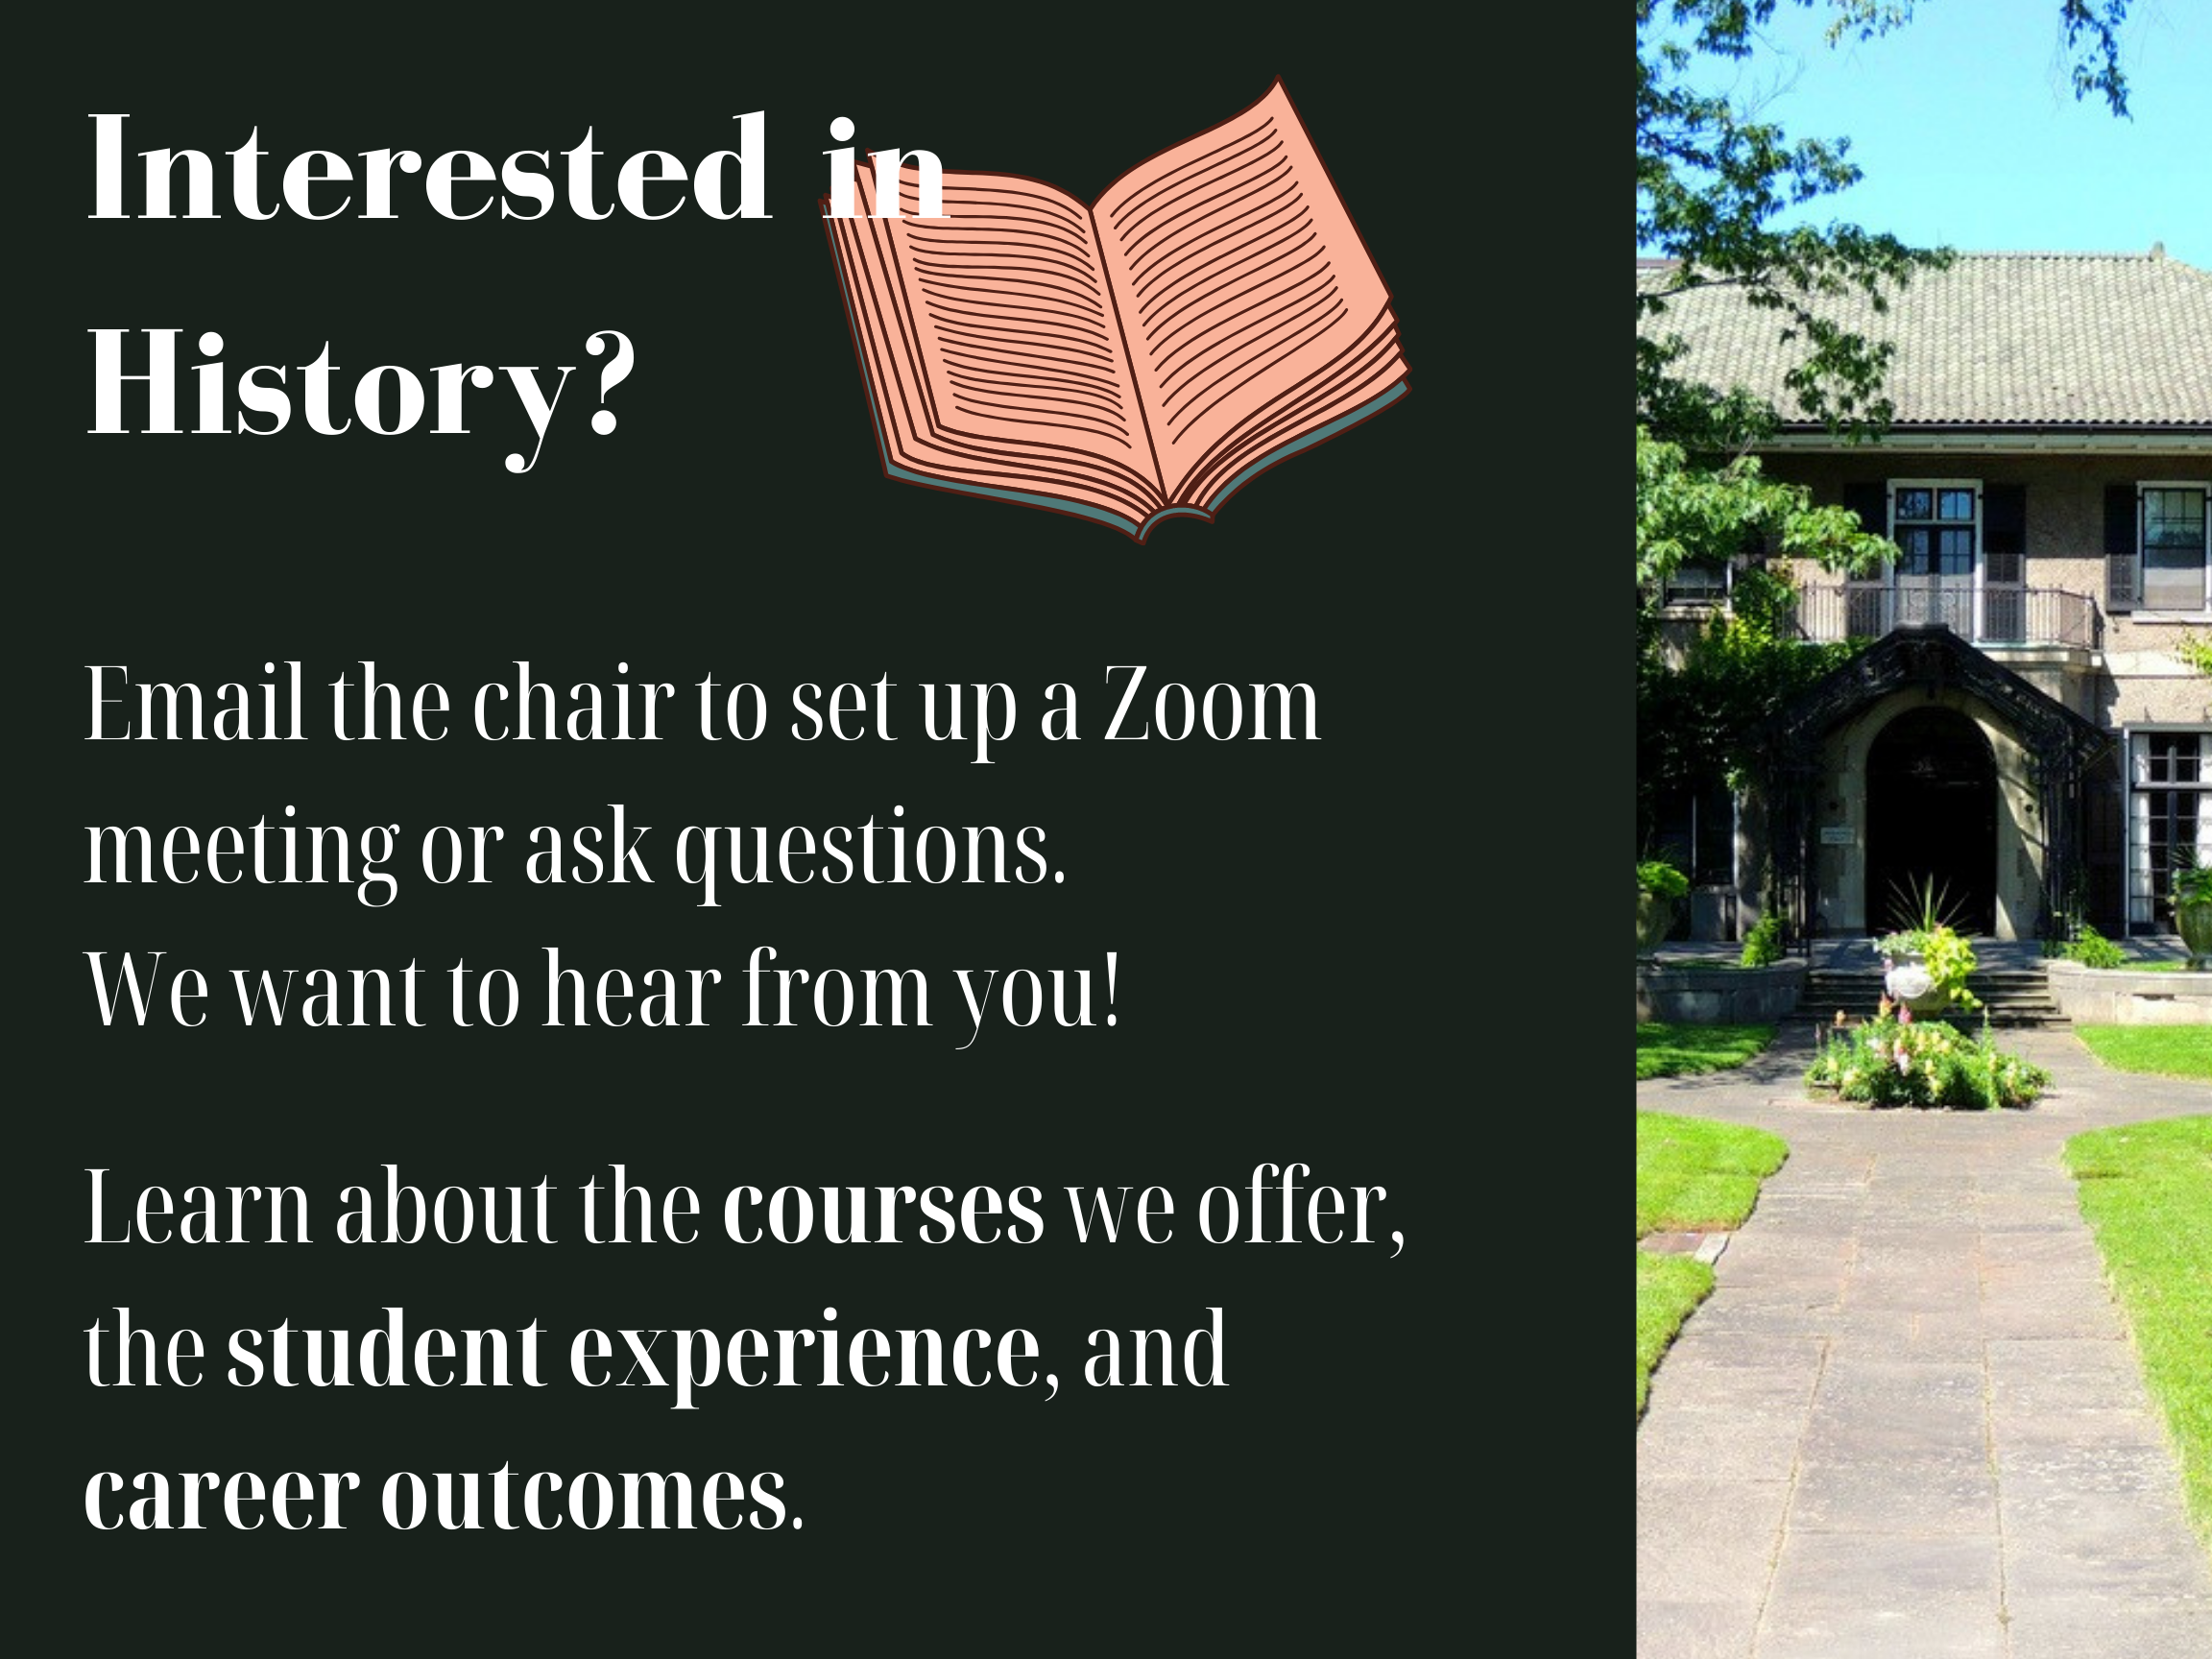 Contact the Chair to ask question about Glendon History